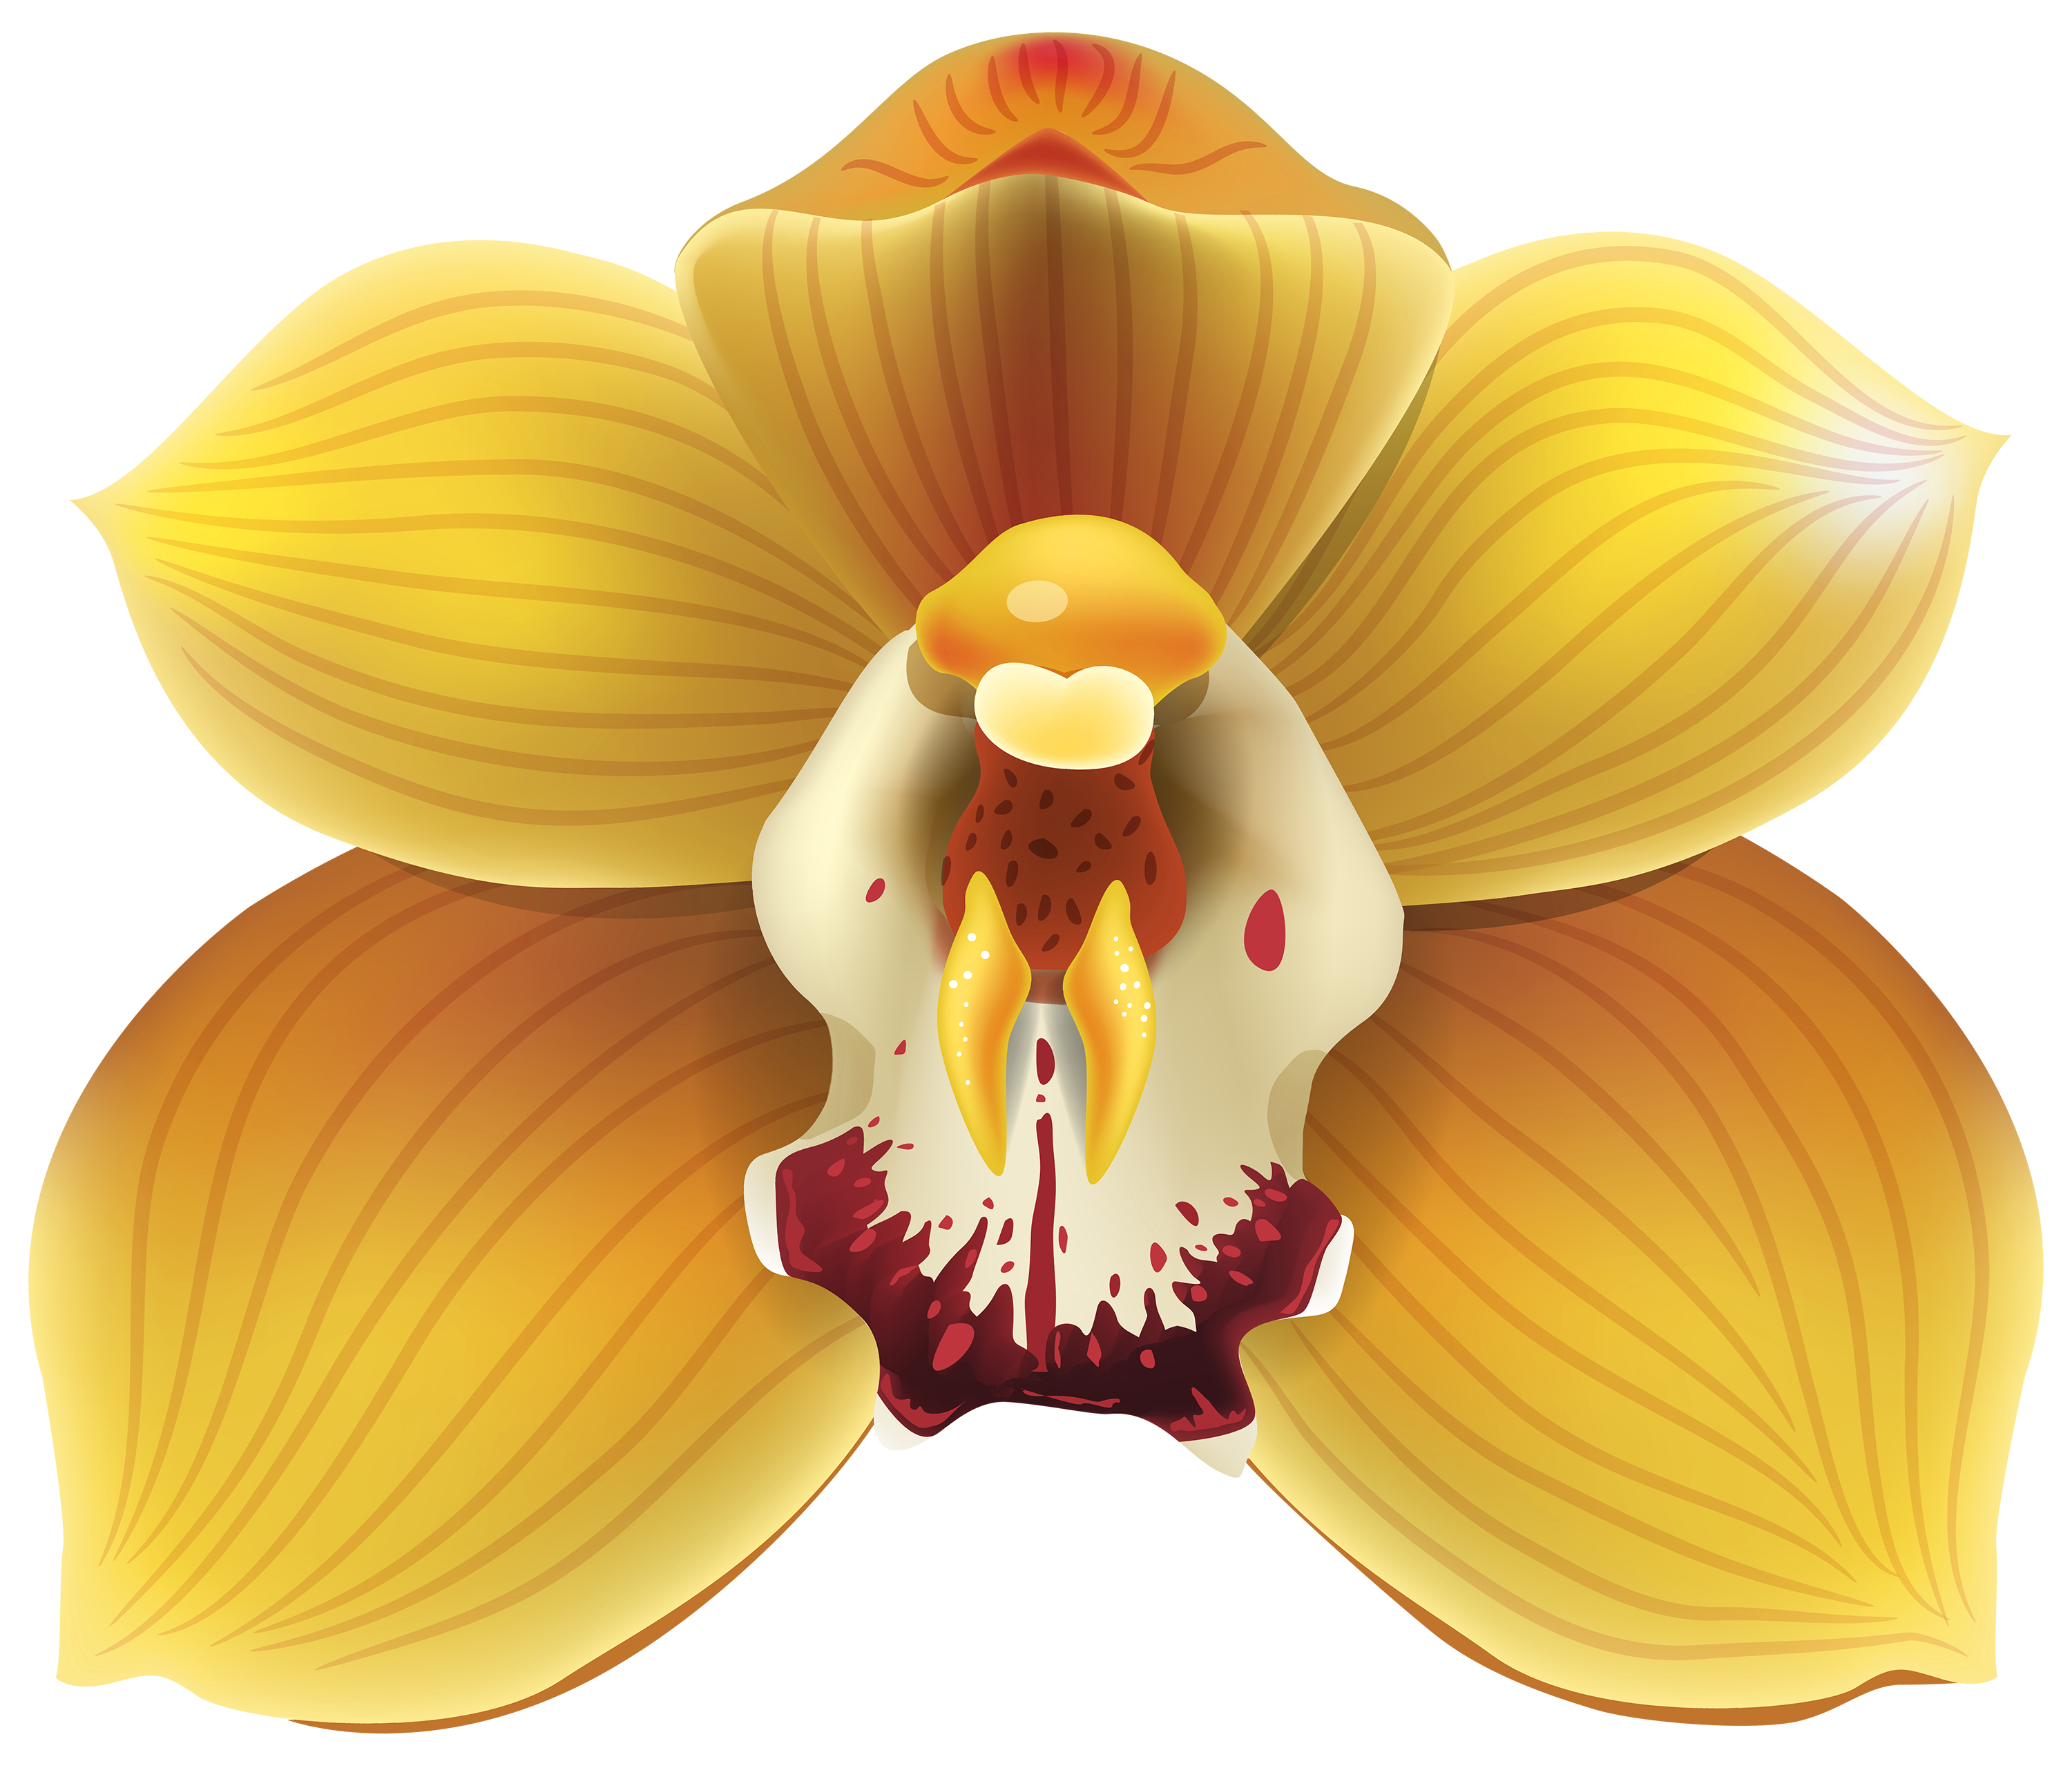 Orchid clipart graphic Orchid Art Images Clip Art